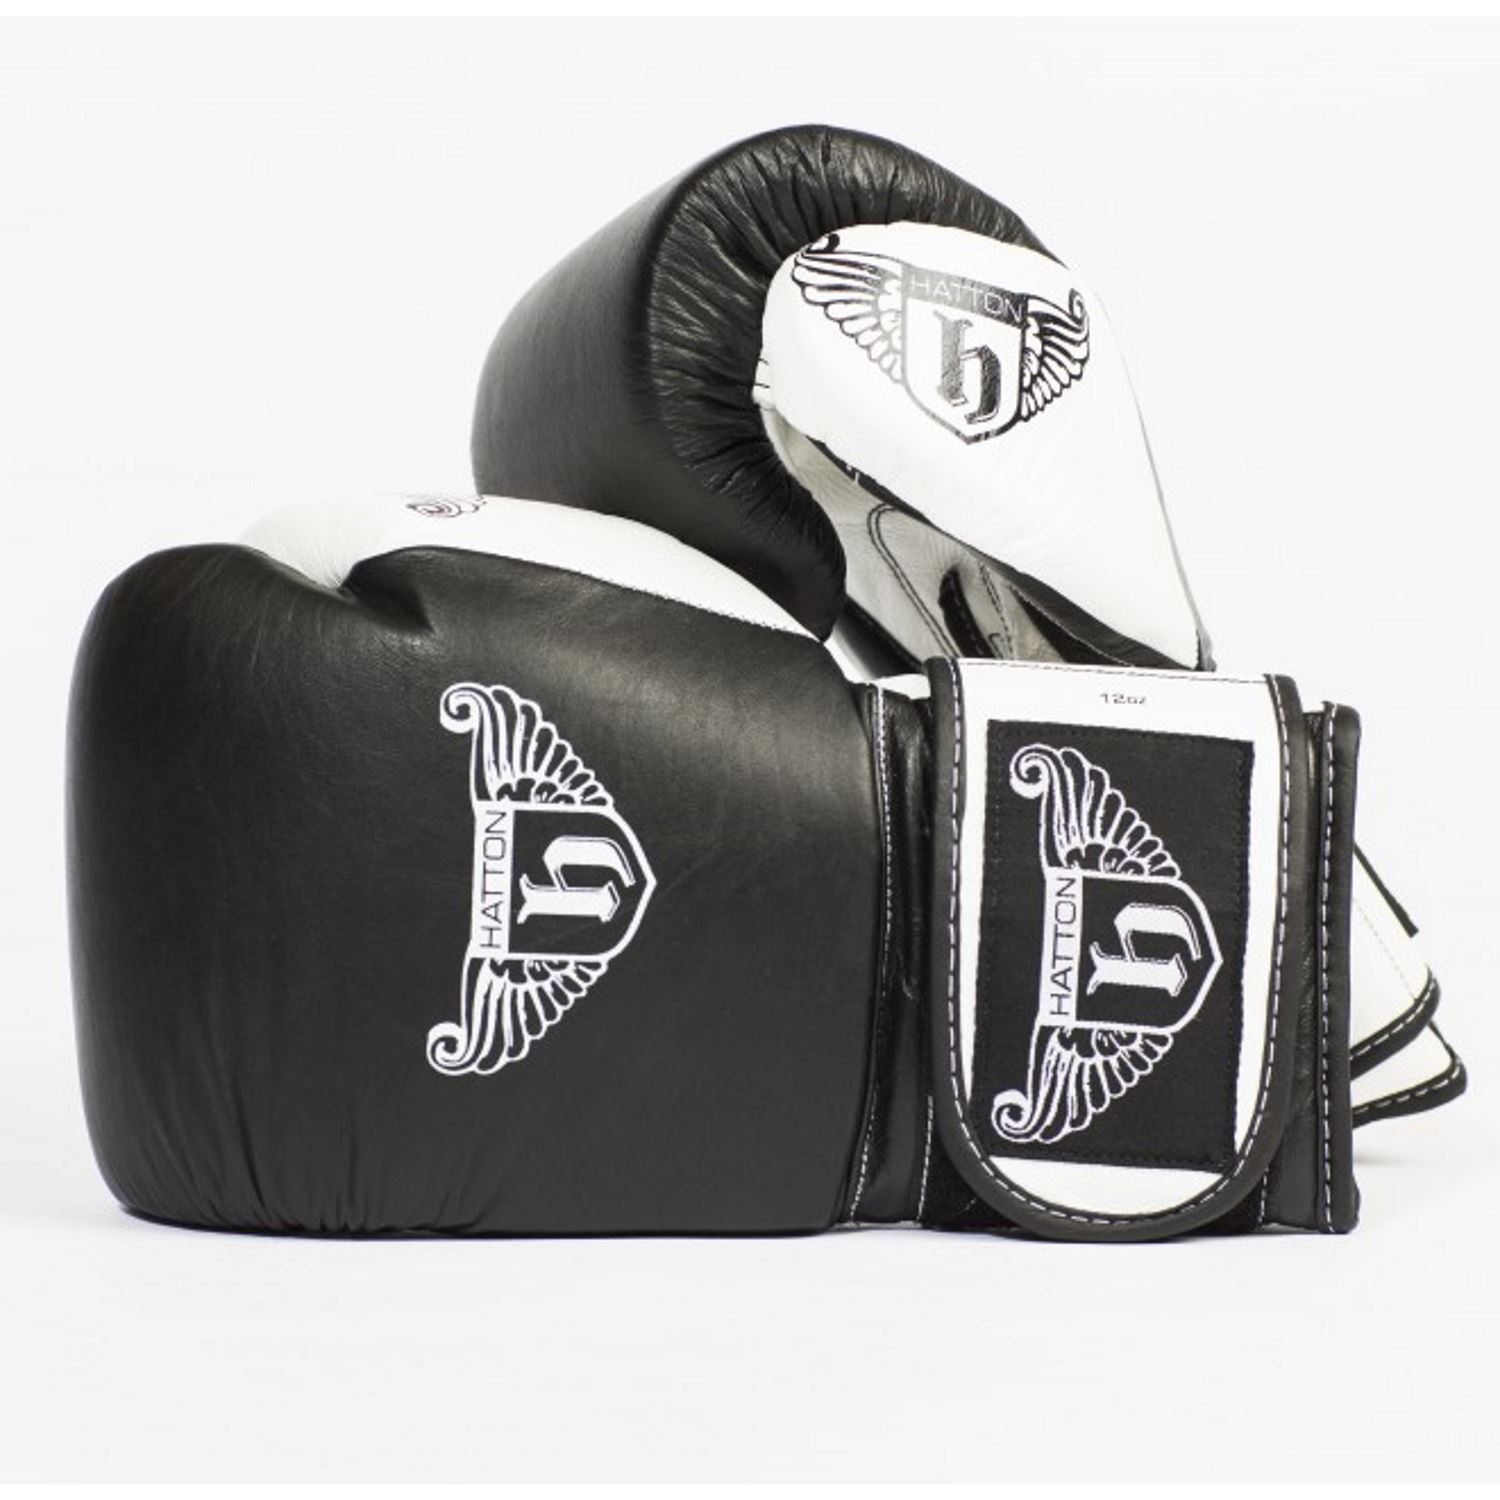 Hatton Pro Sparring Leather Velcro Gloves - 12oz